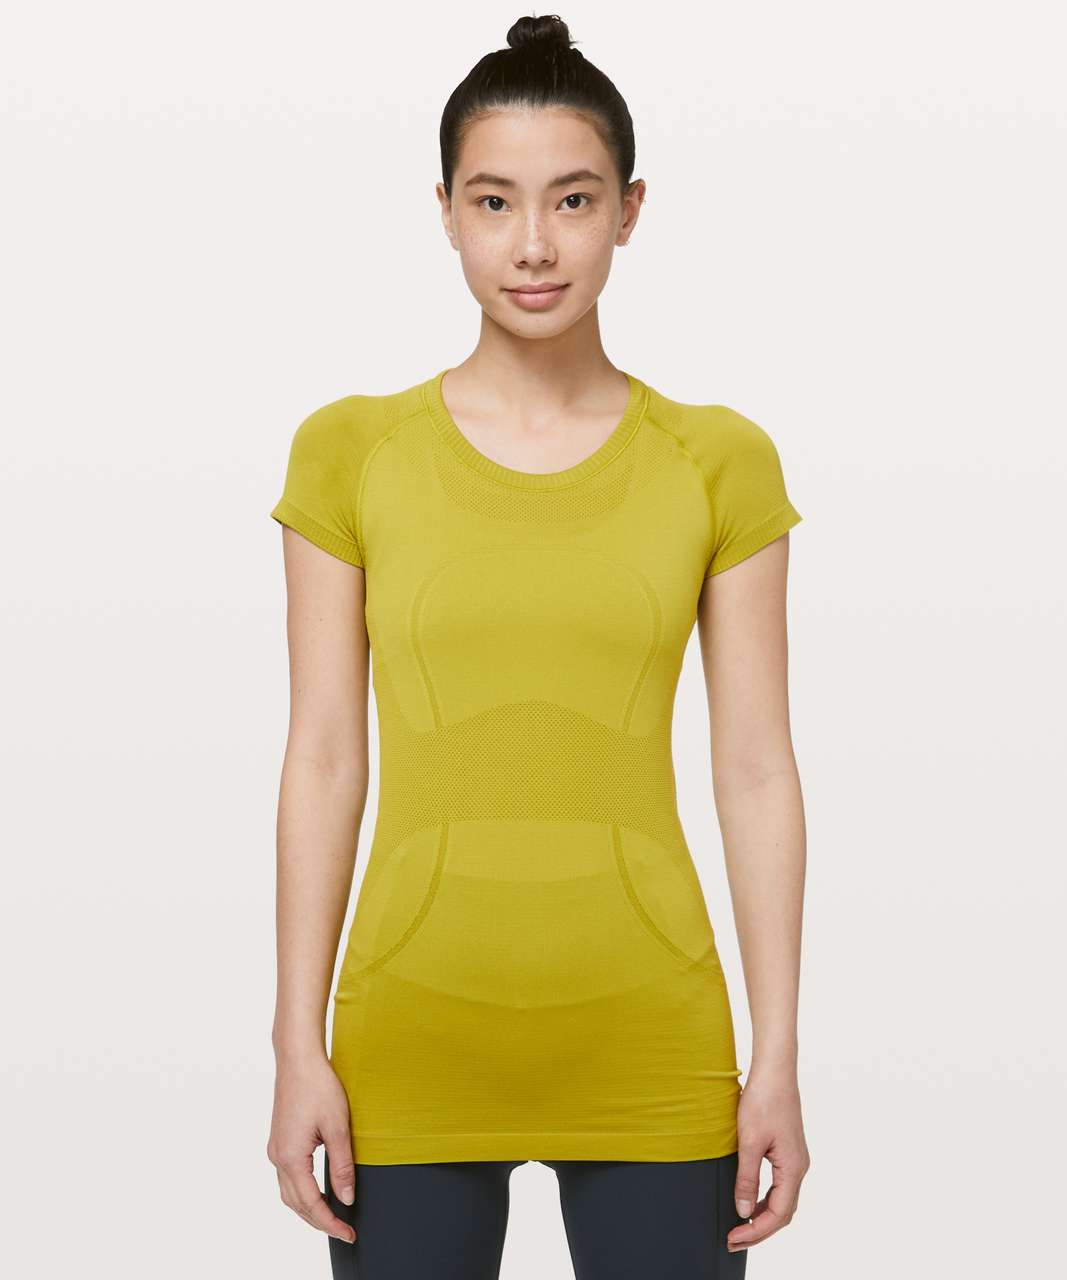 Lululemon Swiftly Tech Short Sleeve Crew - Golden Lime / Golden Lime